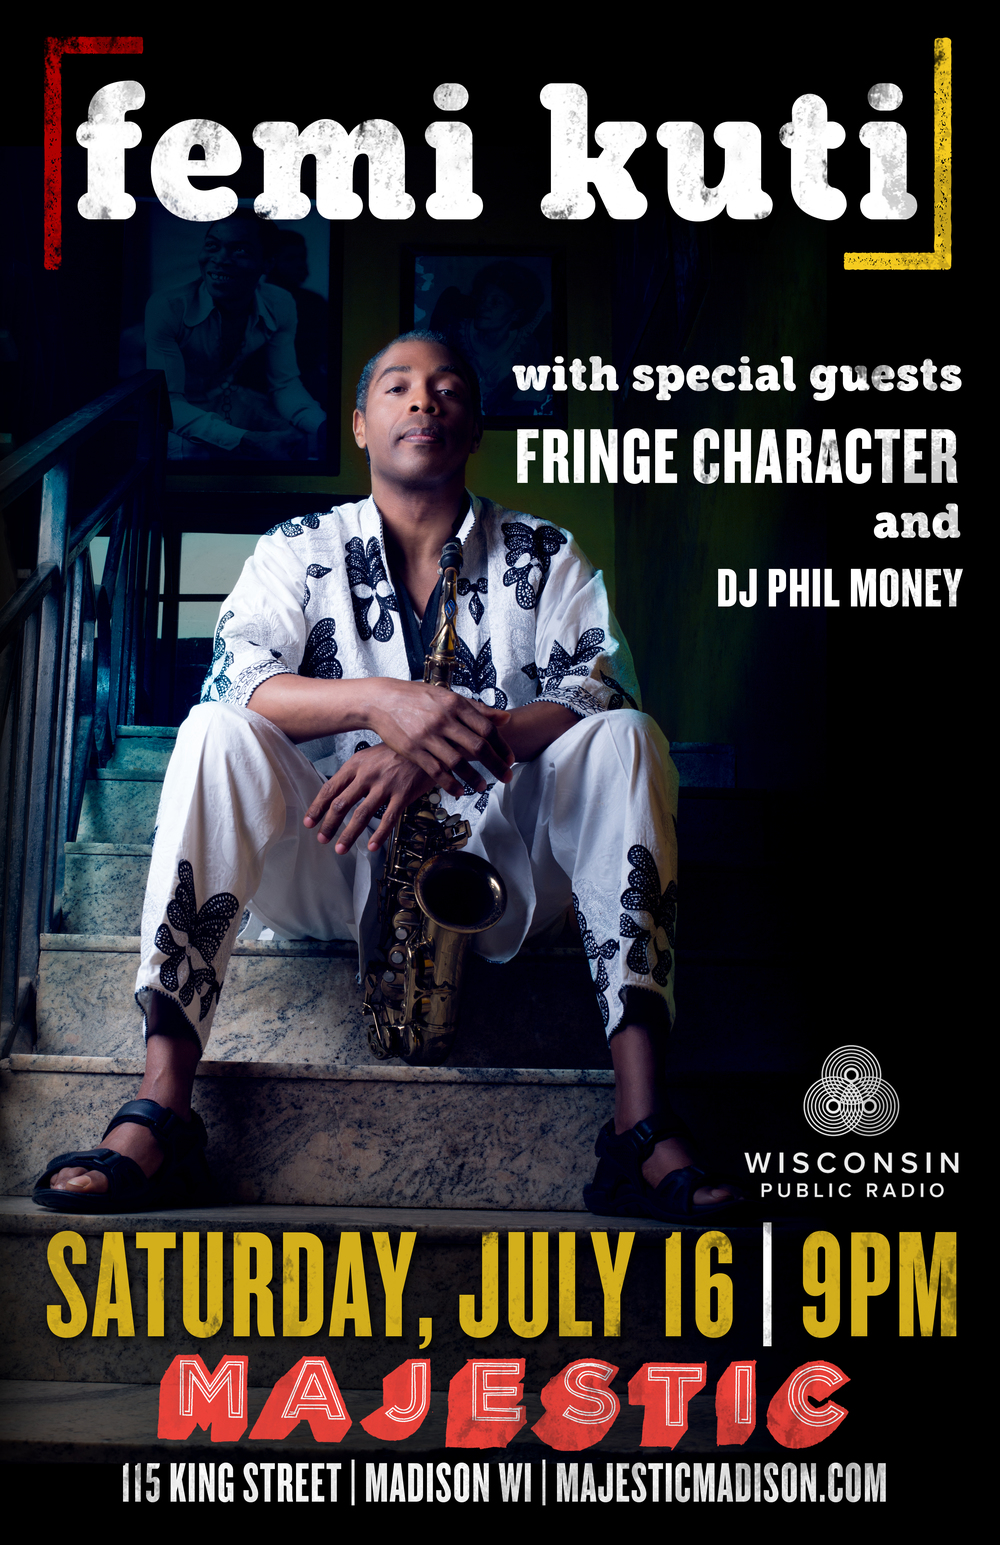 Femi Kuti | Fringe Character | DJ Phil Money